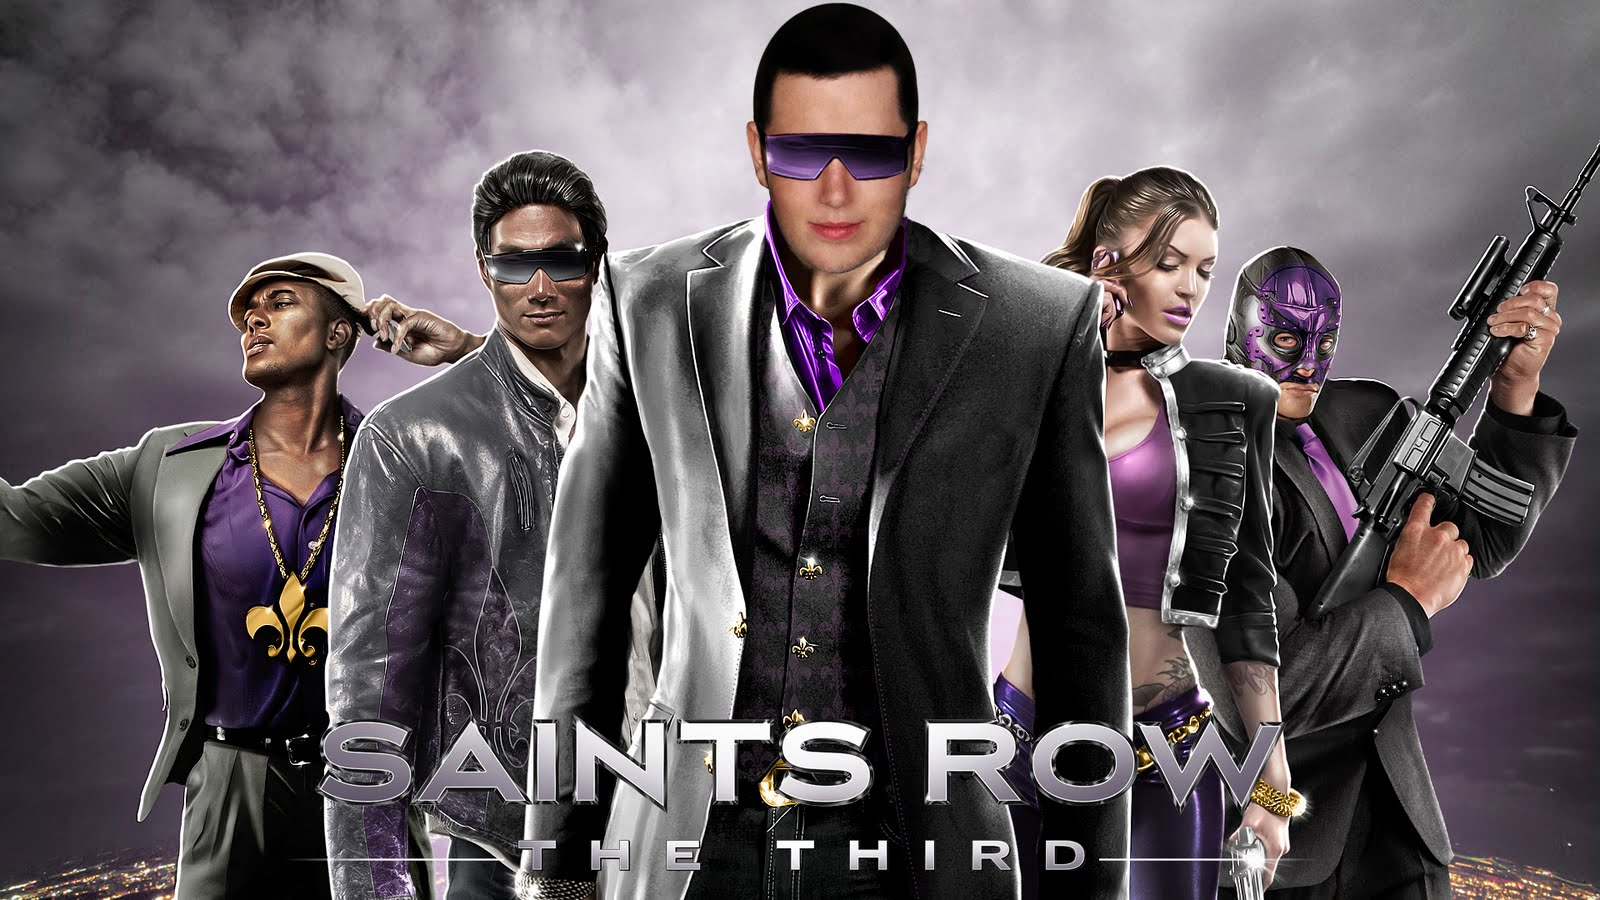 http://2.bp.blogspot.com/-Mc0s84vl6Uk/Trpez8HmdXI/AAAAAAAAAhY/3MszCaQEmW0/s1600/Saints-Row-The-Third-Wallpaper.jpg